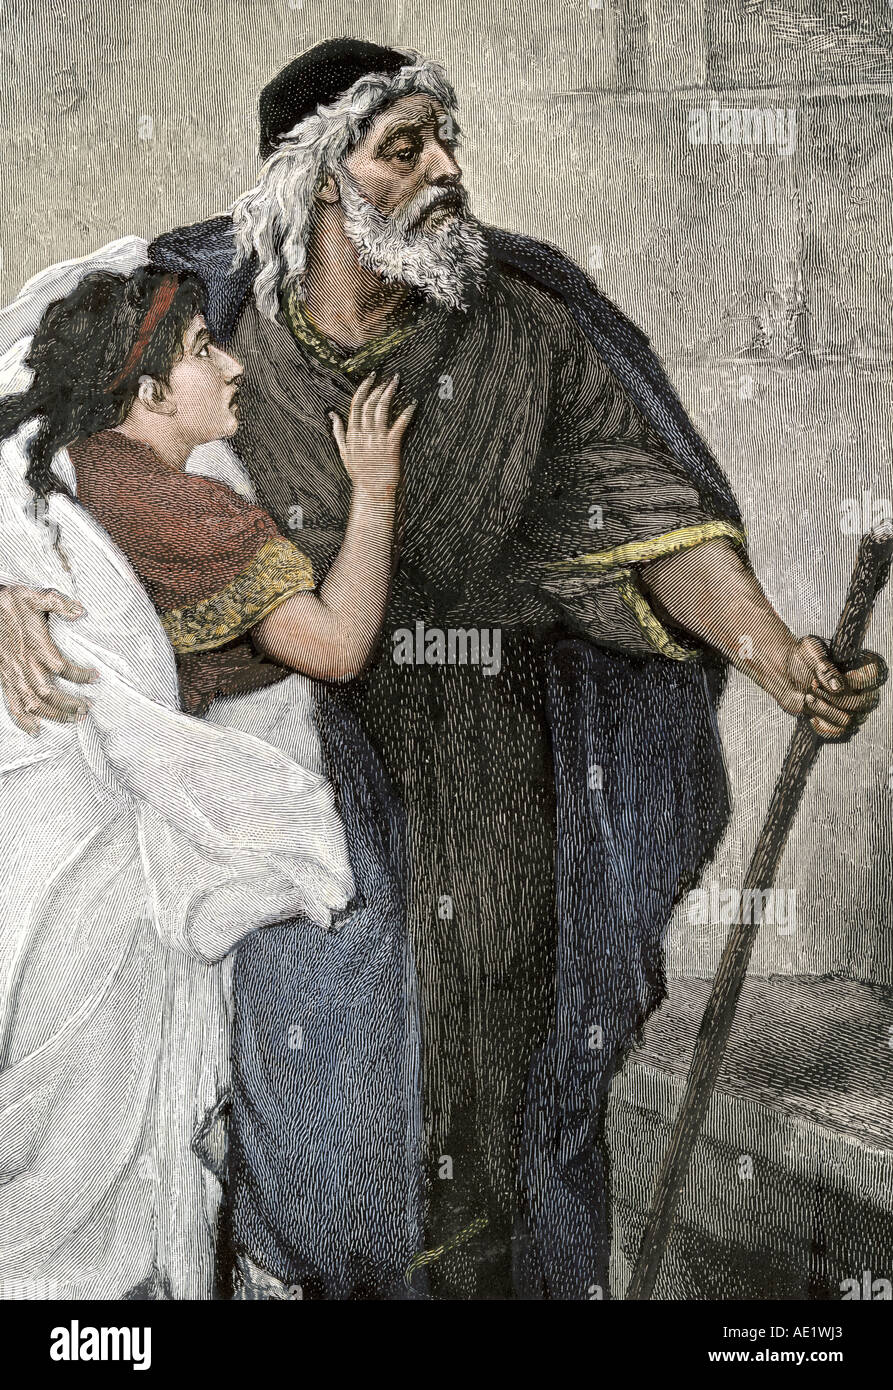 Father walking with a cane aided by his daughter. Hand-colored woodcut - Stock Image